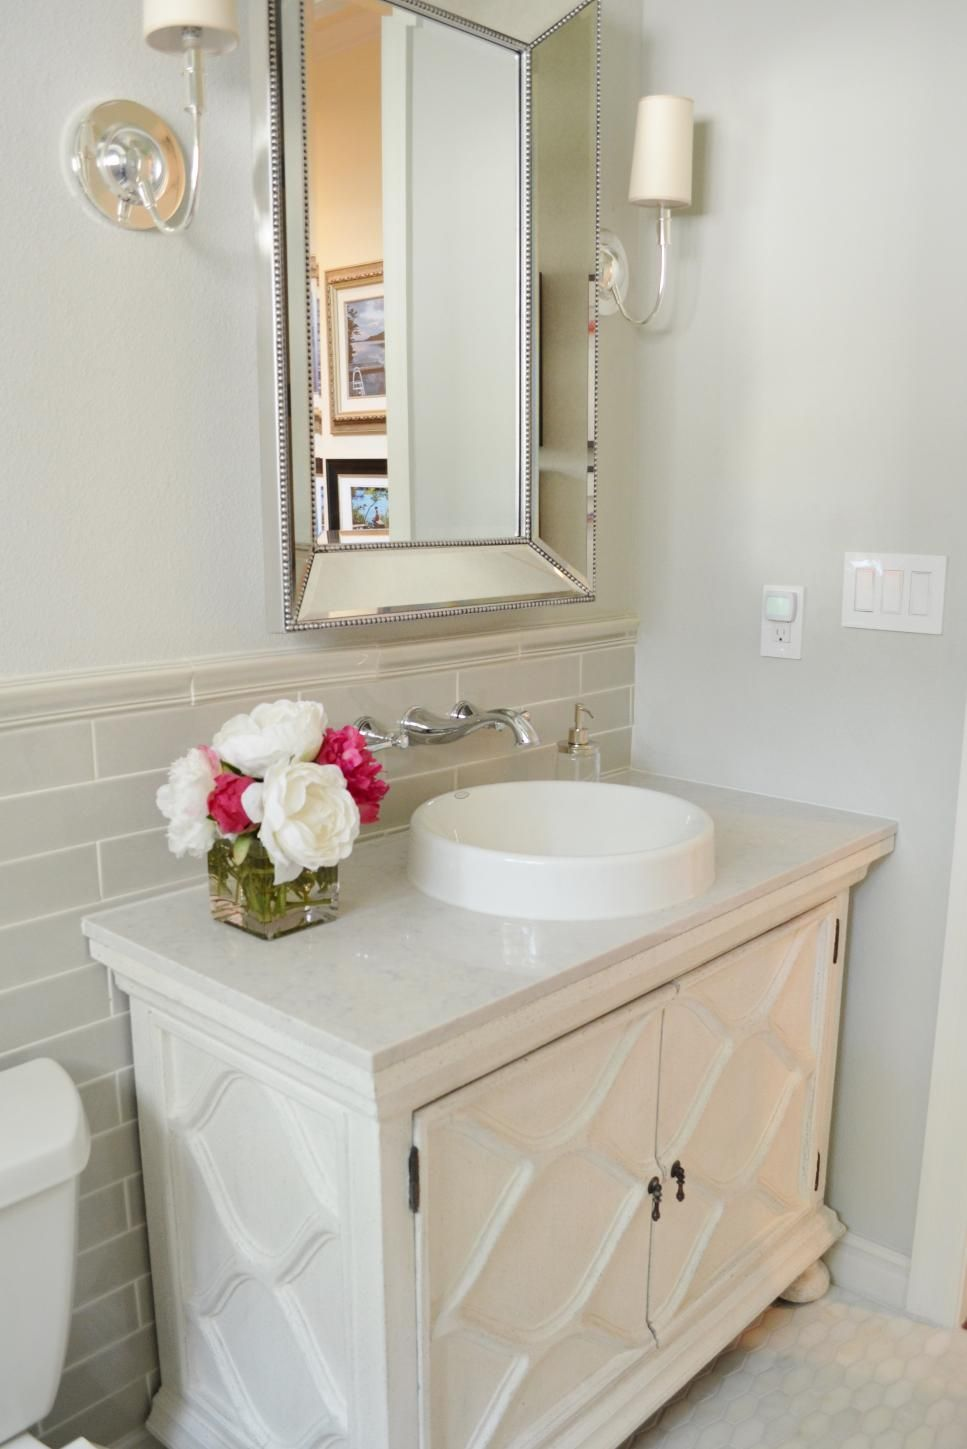 Bathroom Makeover For Under $1000 before-and-after bathroom remodels on a budget | marble floor